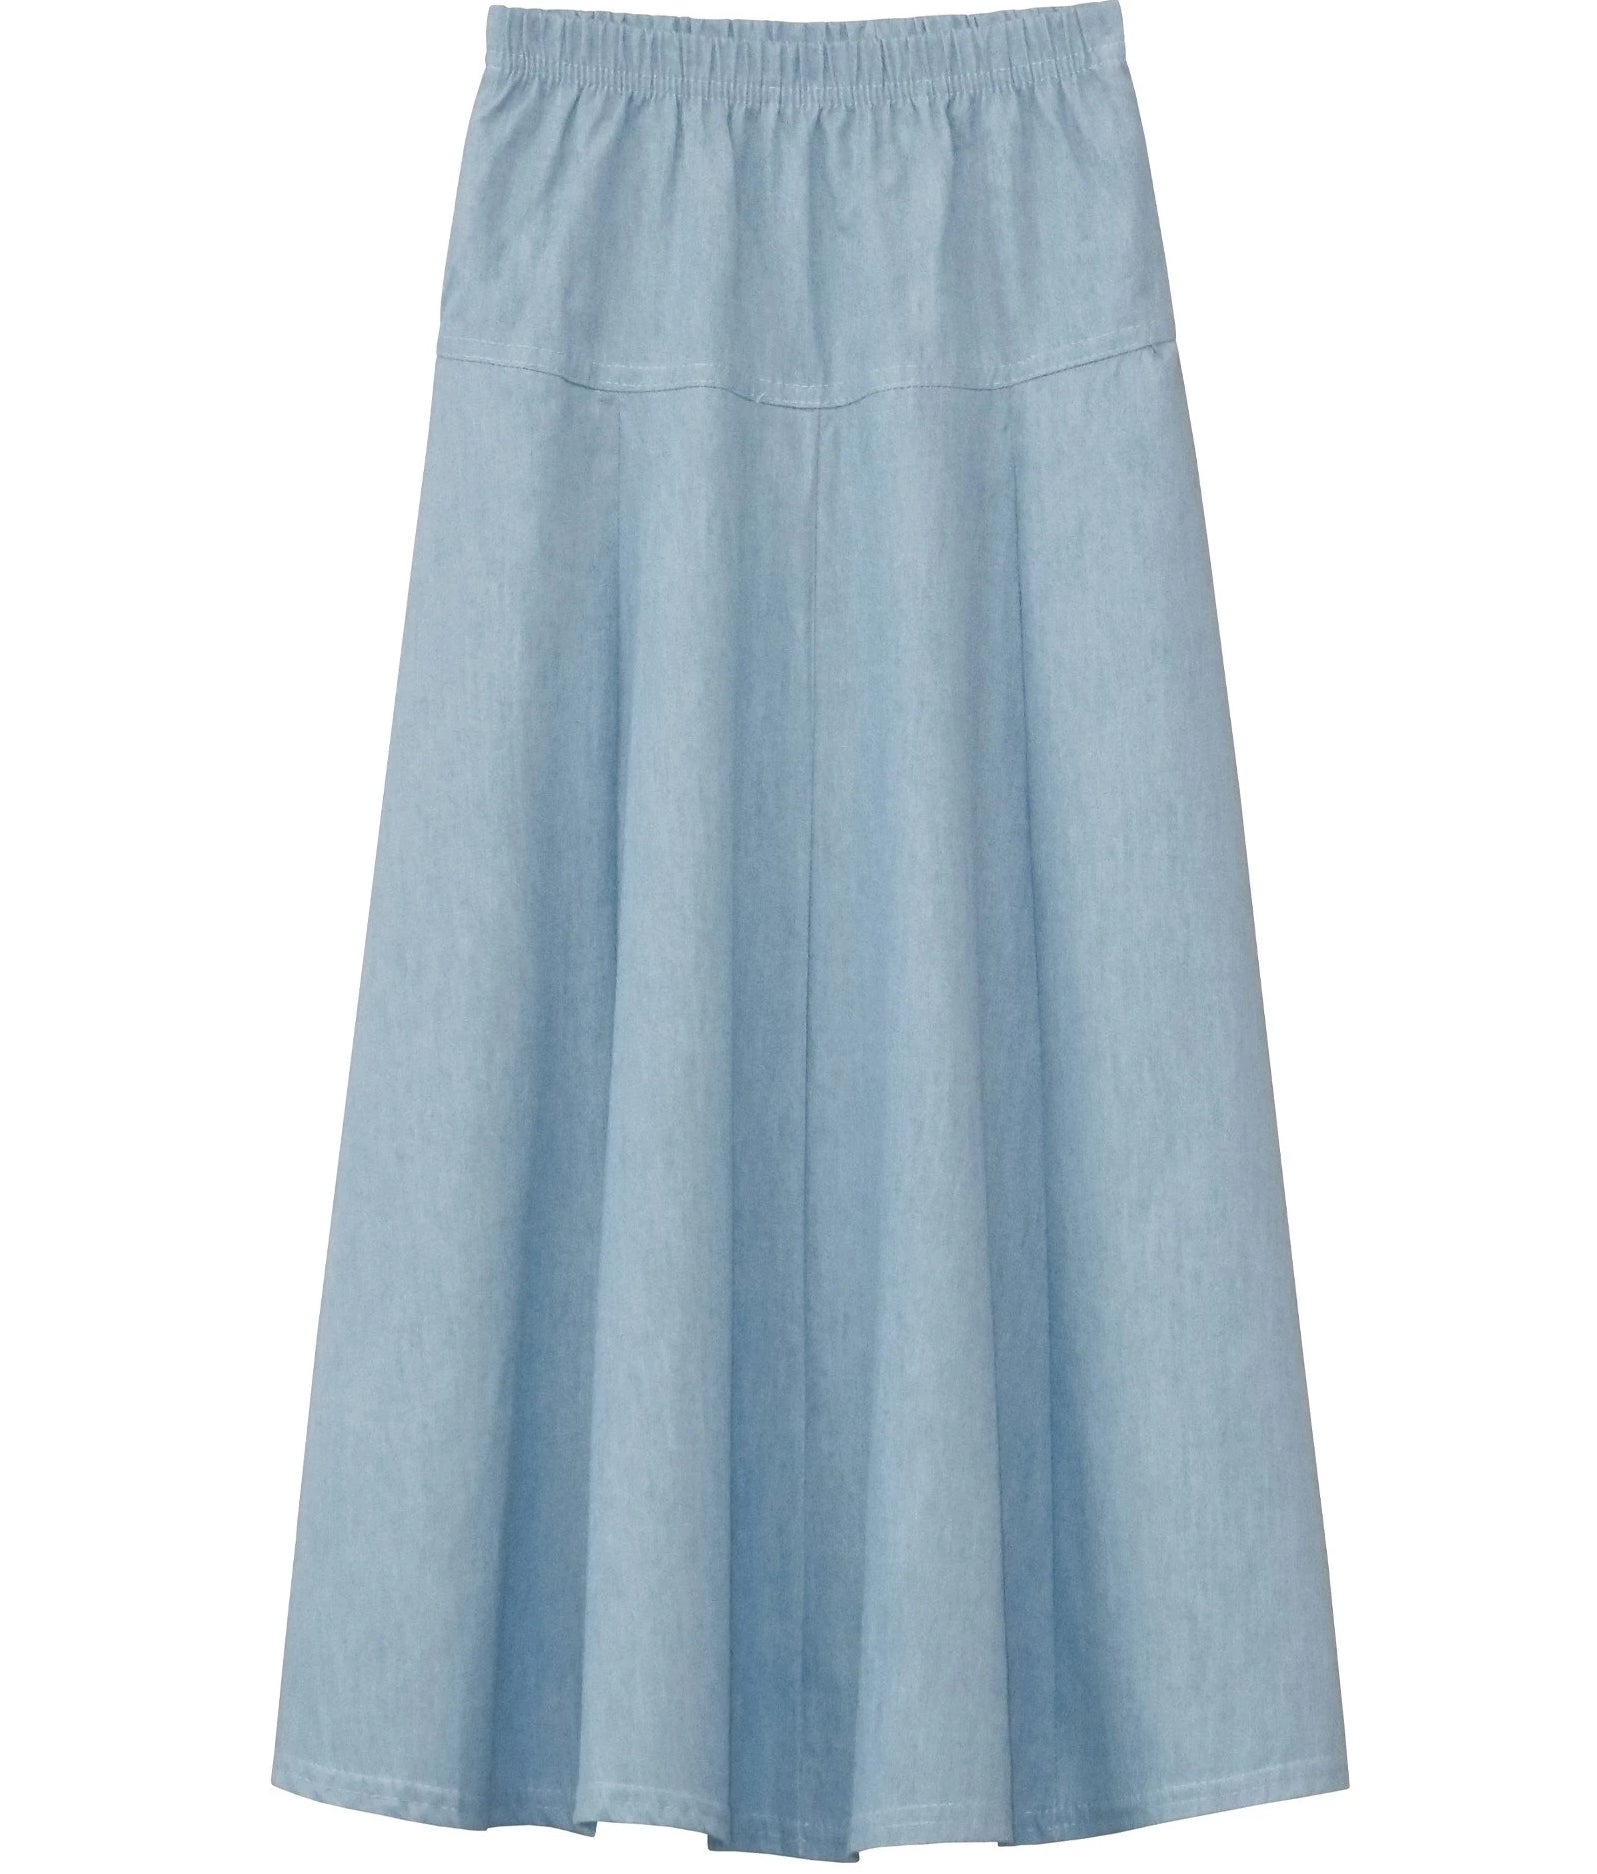 BabyO Girls Basic Stretch Knit Fit and Flare A-Line Maxi Skirt Childrens